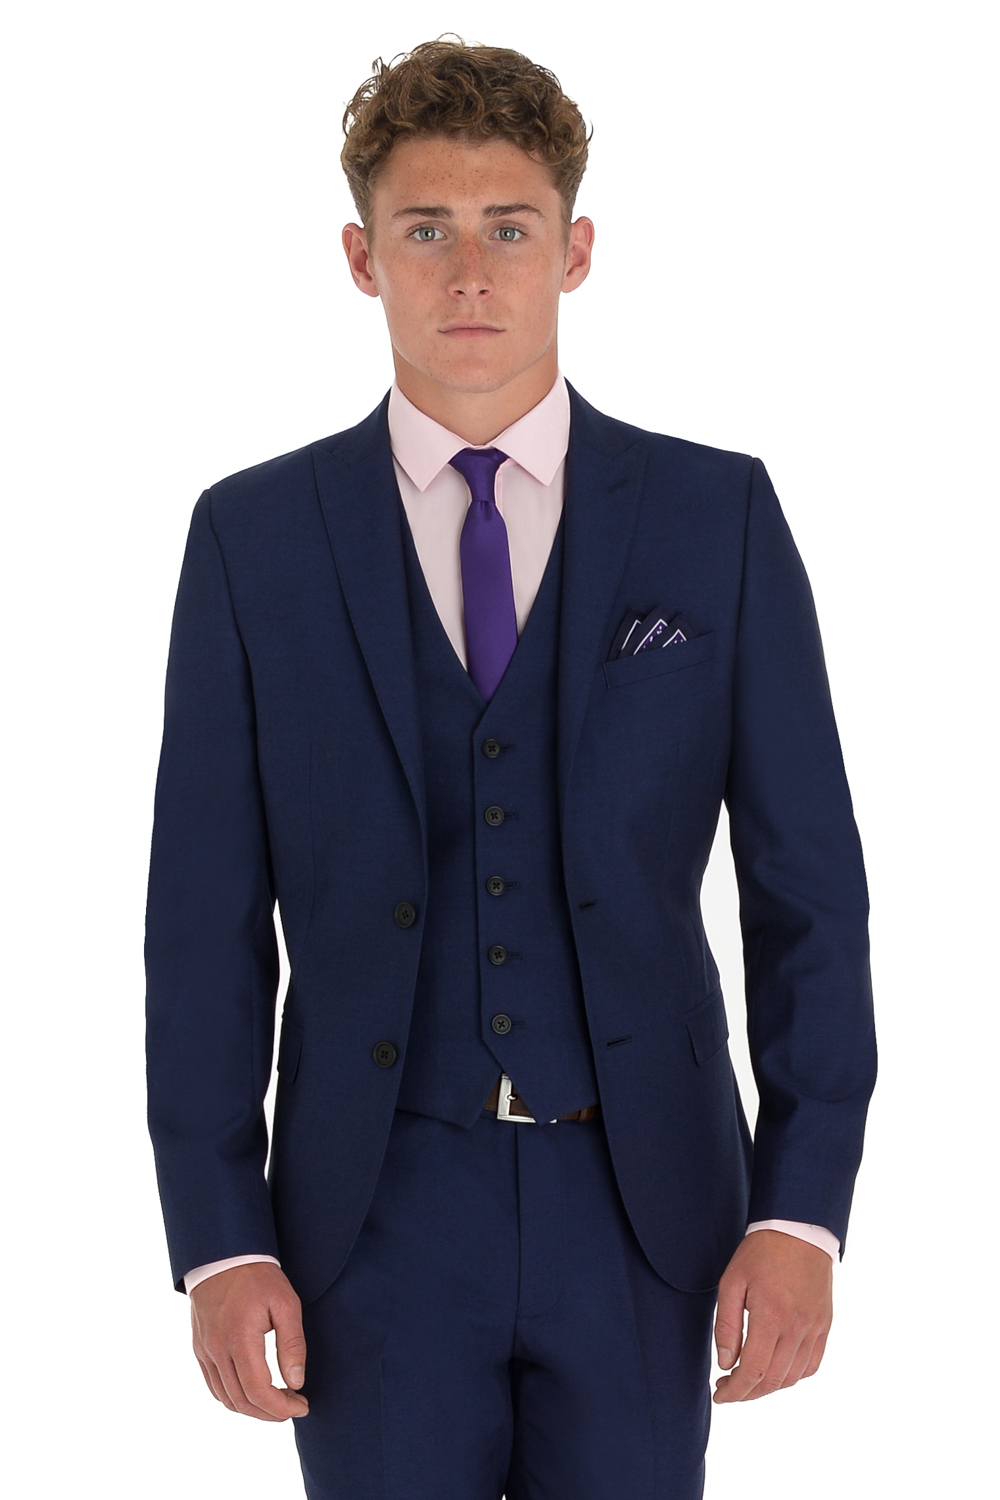 The days of stiff men's suits are long gone. Smooth, rich fabrics and slimmer fits will give you great panache, perfect for the office or special occasions.